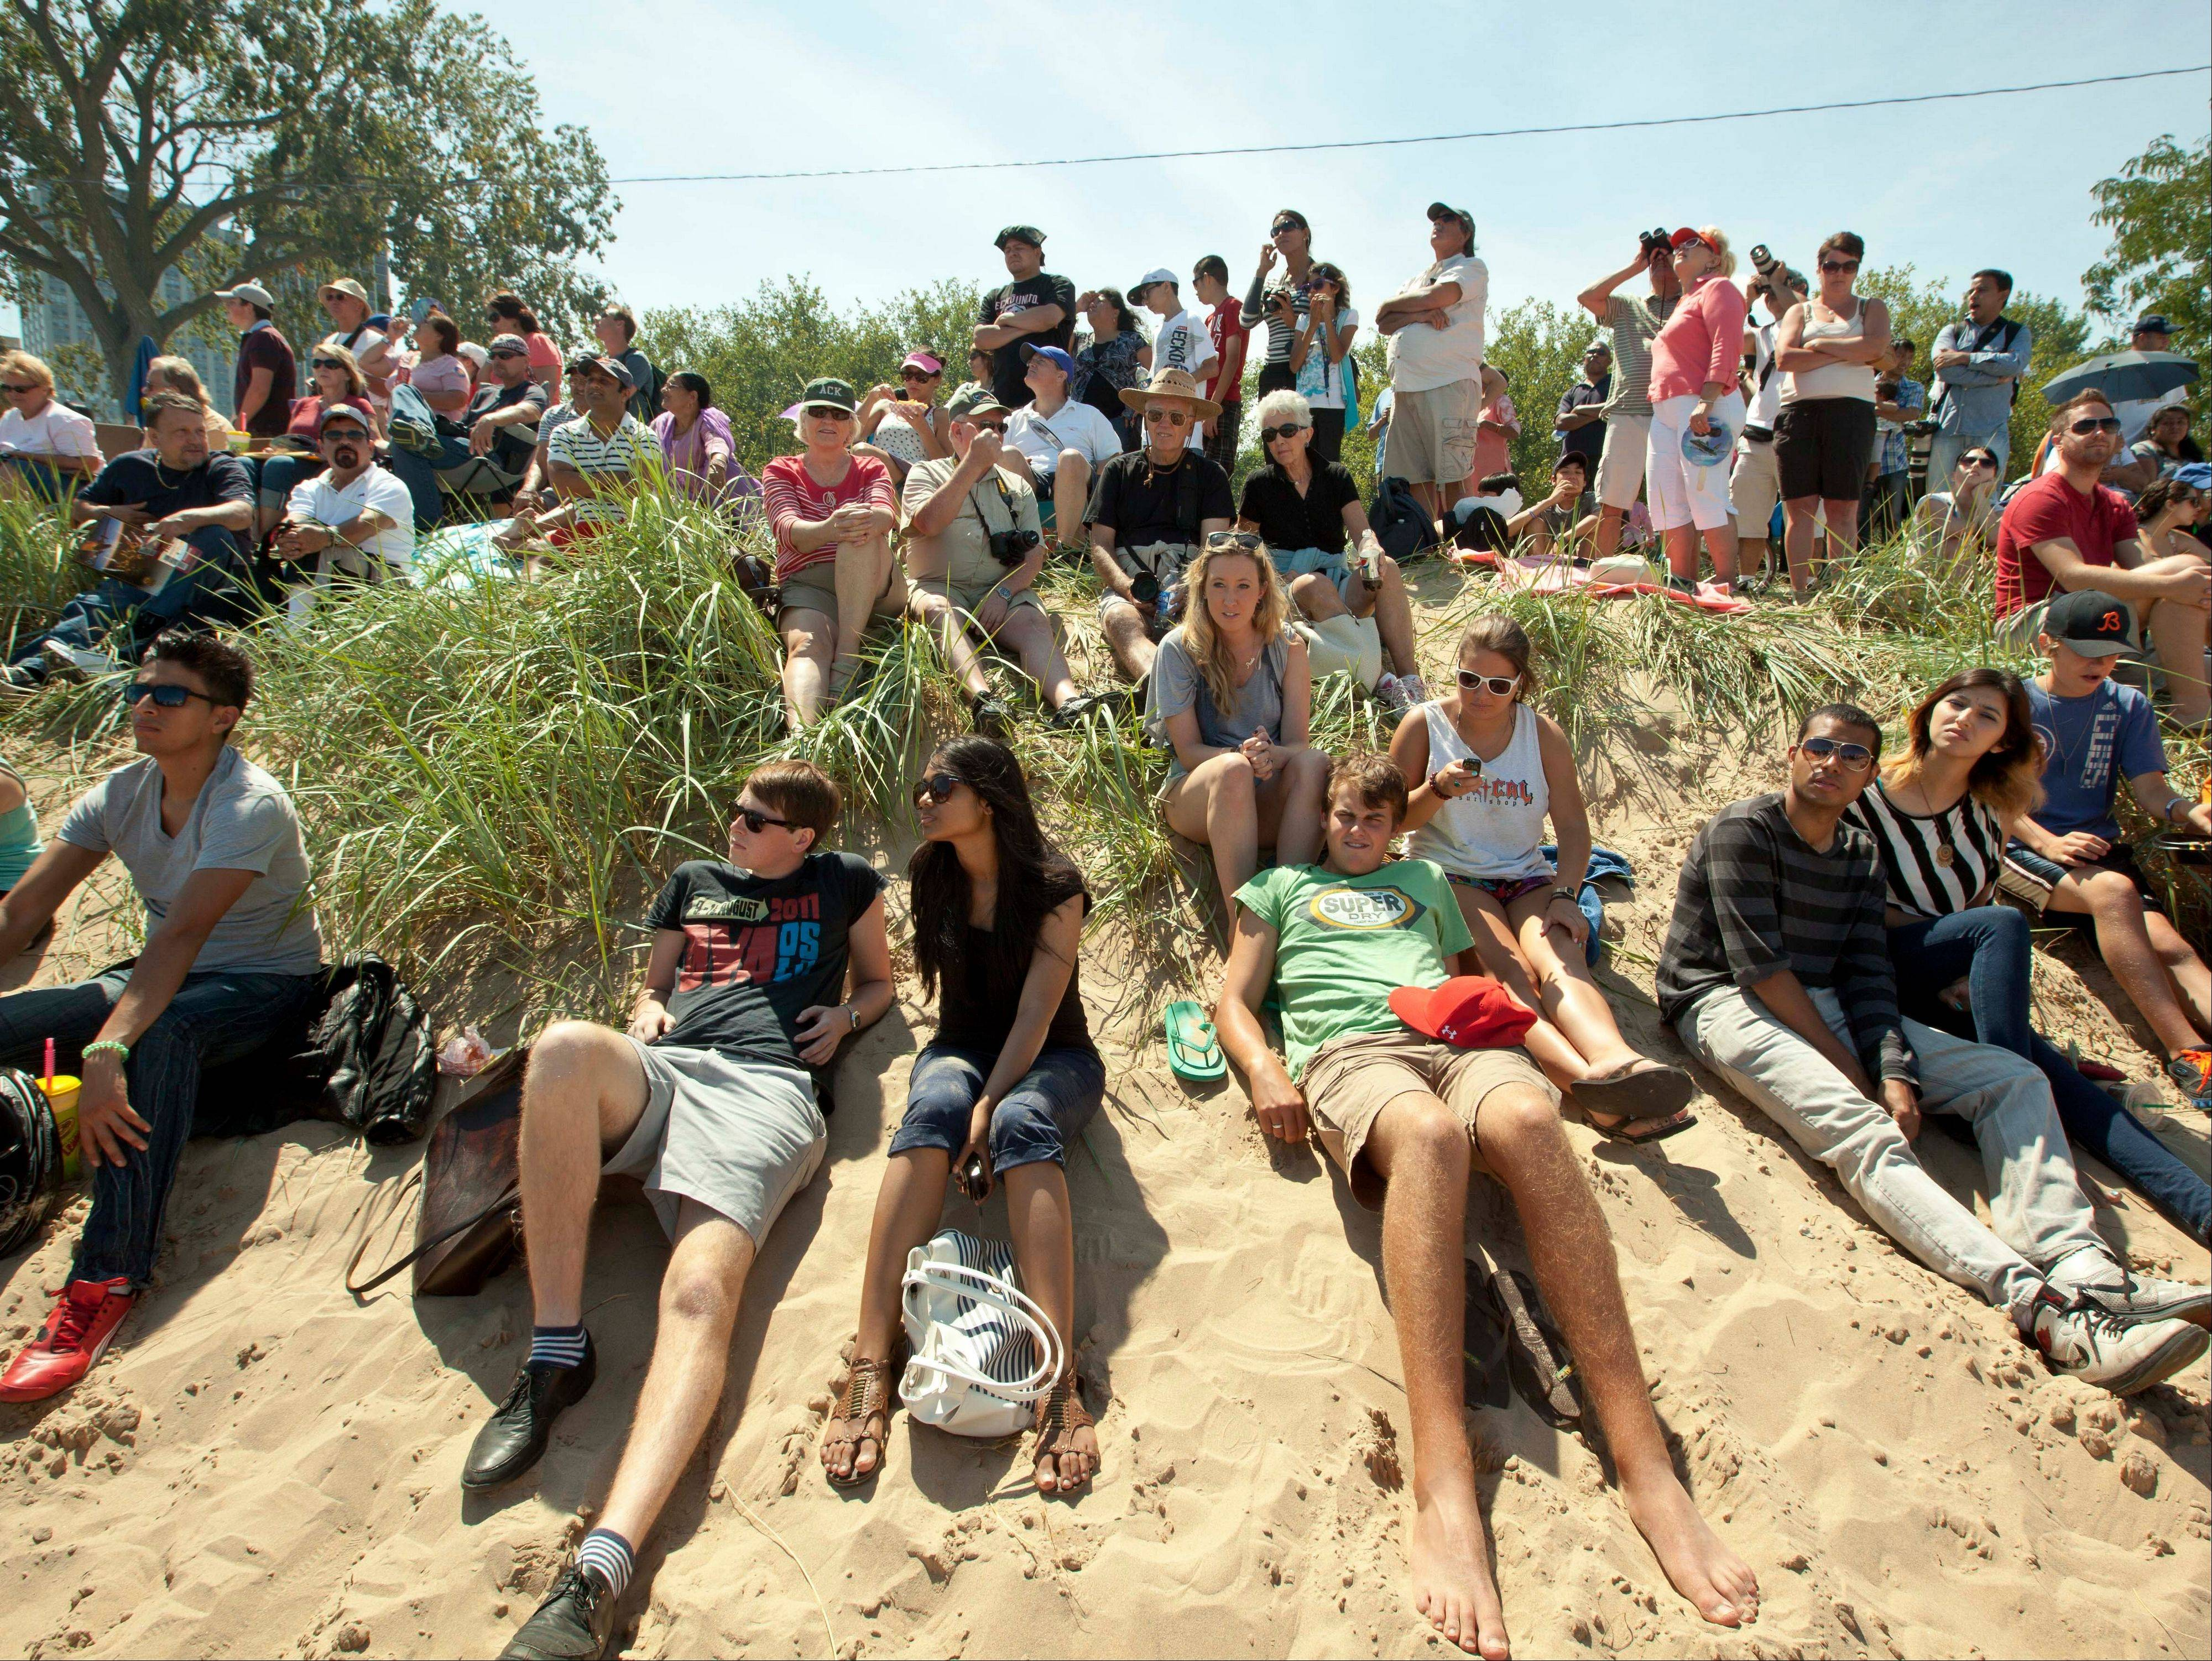 Visitors to the Chicago Air and Water Show position themselves on sand dunes to get a slightly elevated vantage point on Saturday, Aug. 18, 2012 in Chicago.